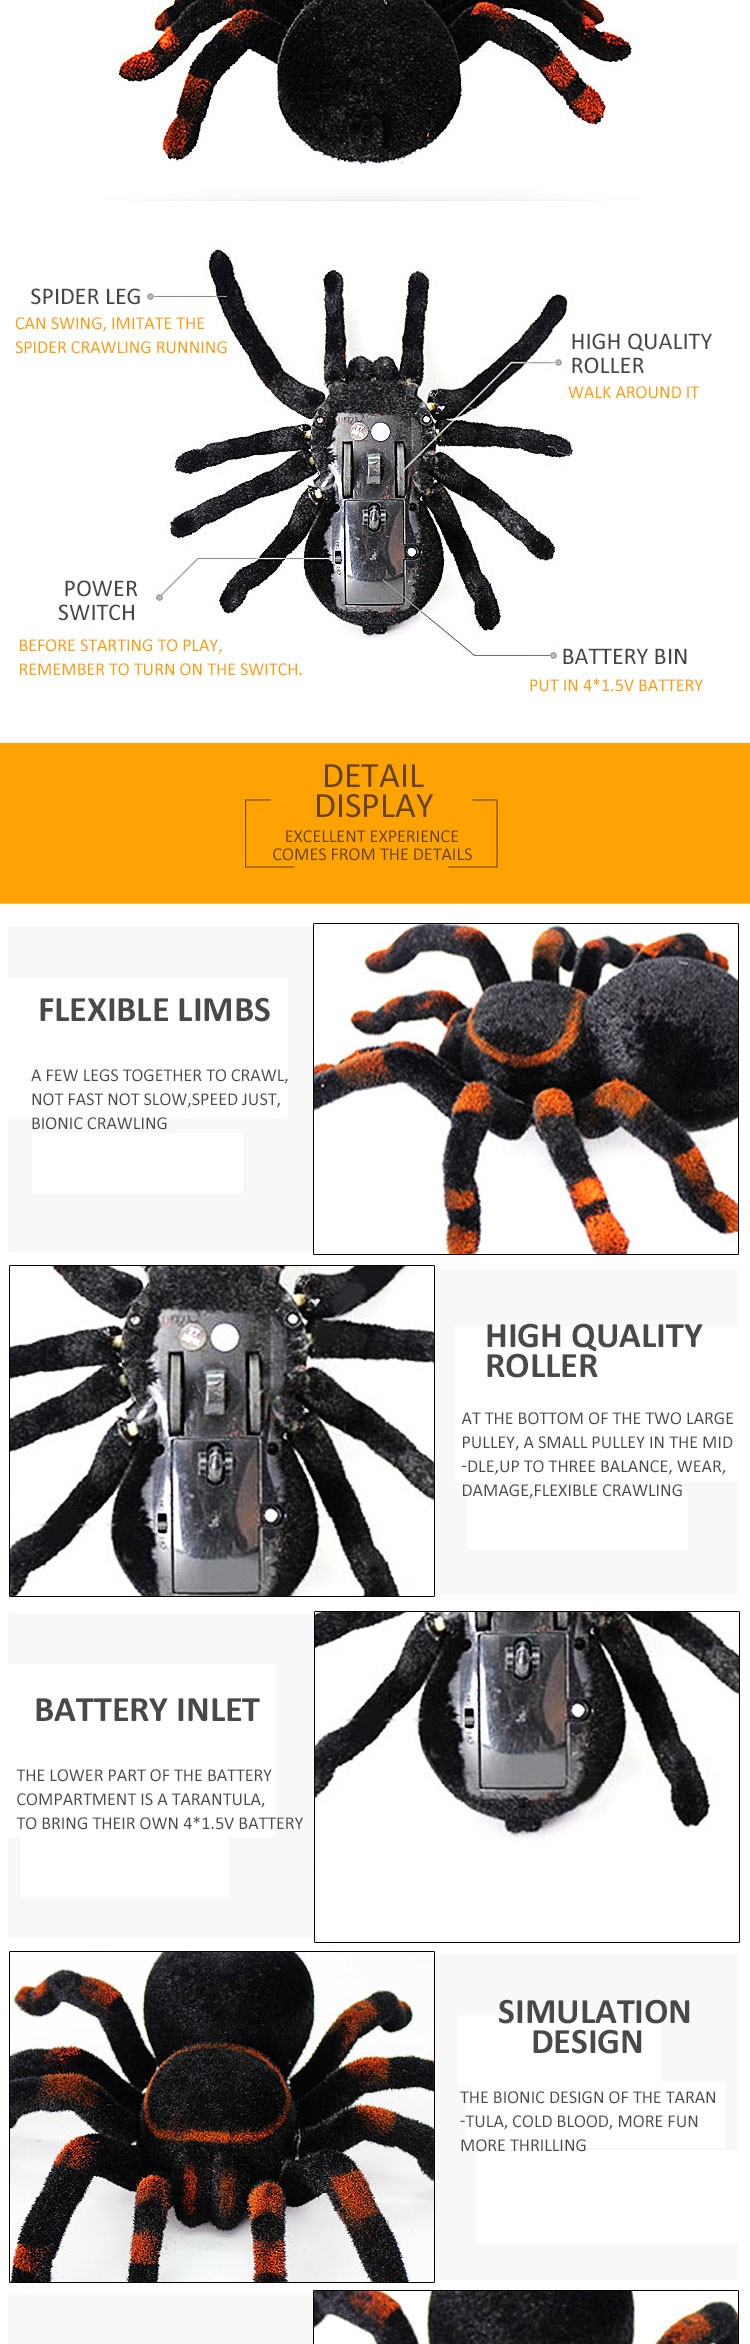 2016 Hot Toys Hobbies RC Spider Toys